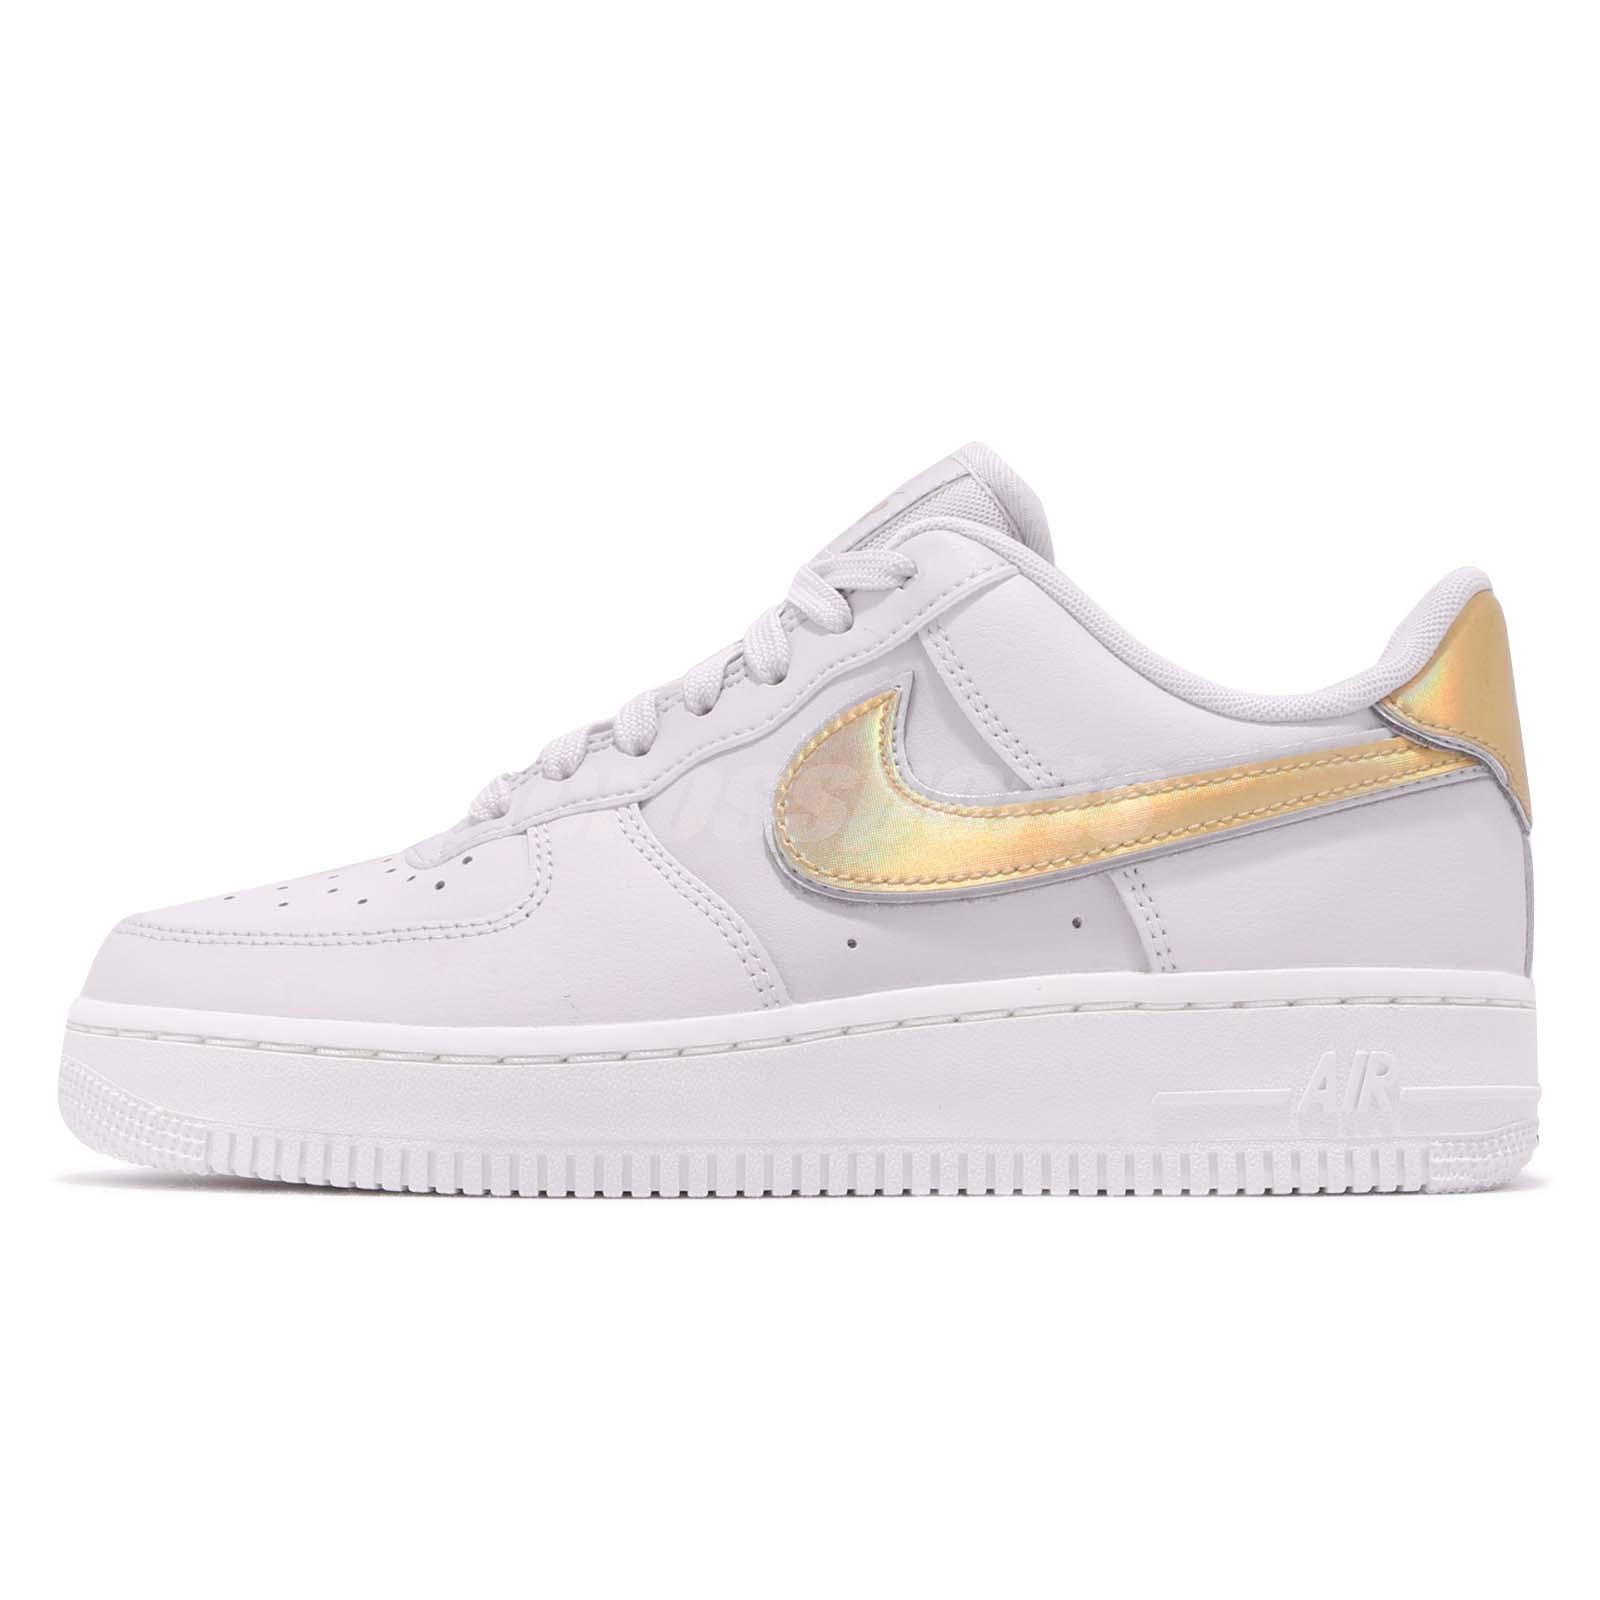 Details about Nike Wmns Air Force 1 07 MTLC AF1 Grey Gold Women Casual Shoe Sneaker AR0642 001